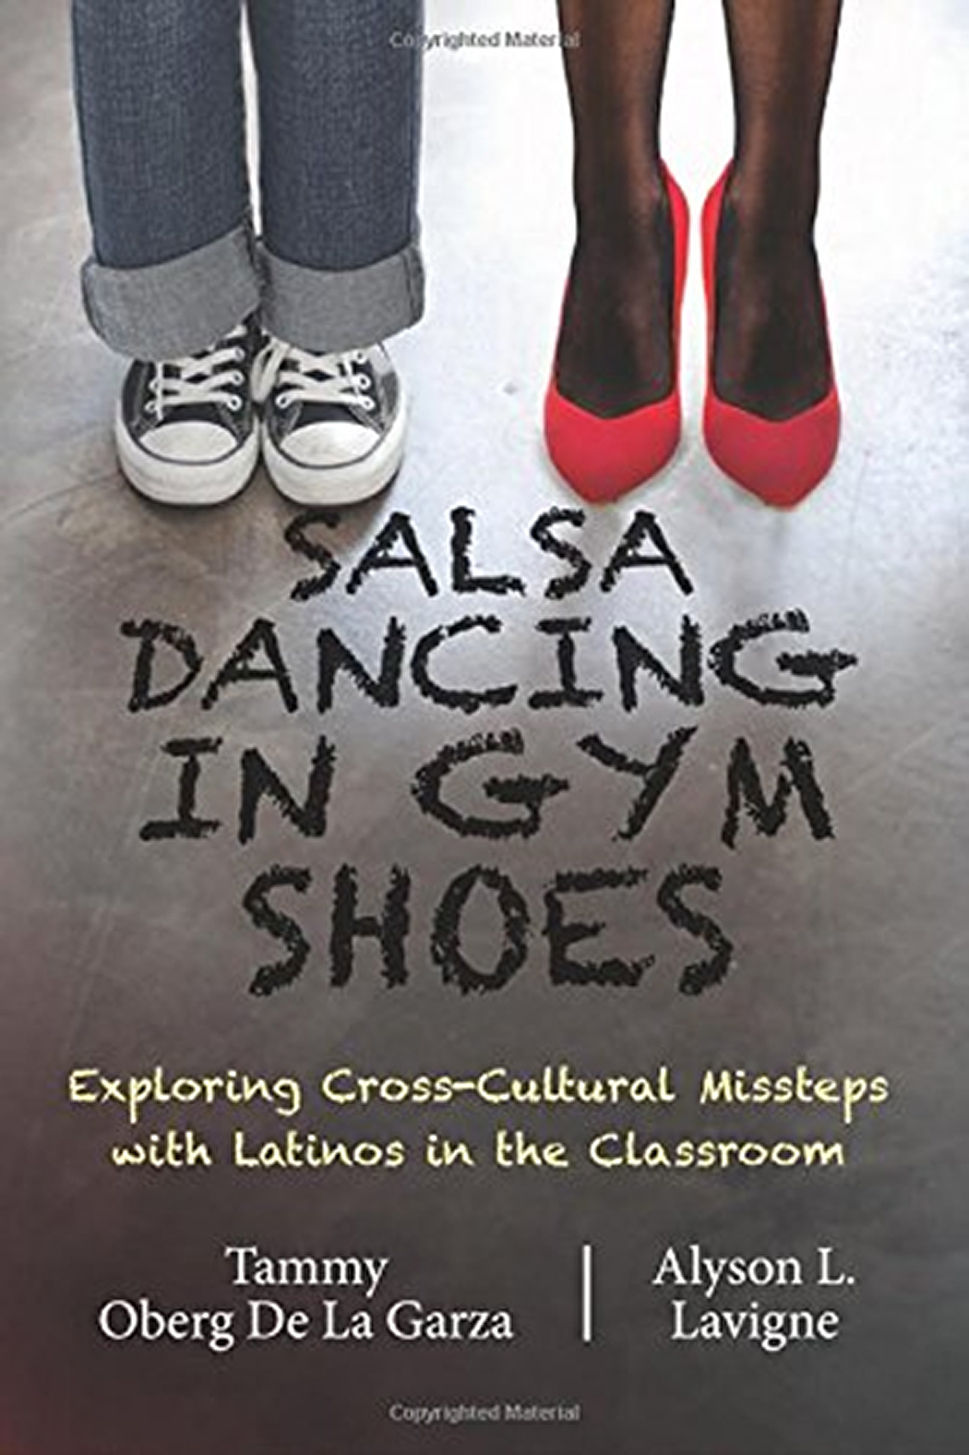 'Salsa Dancing in Gym Shoes'